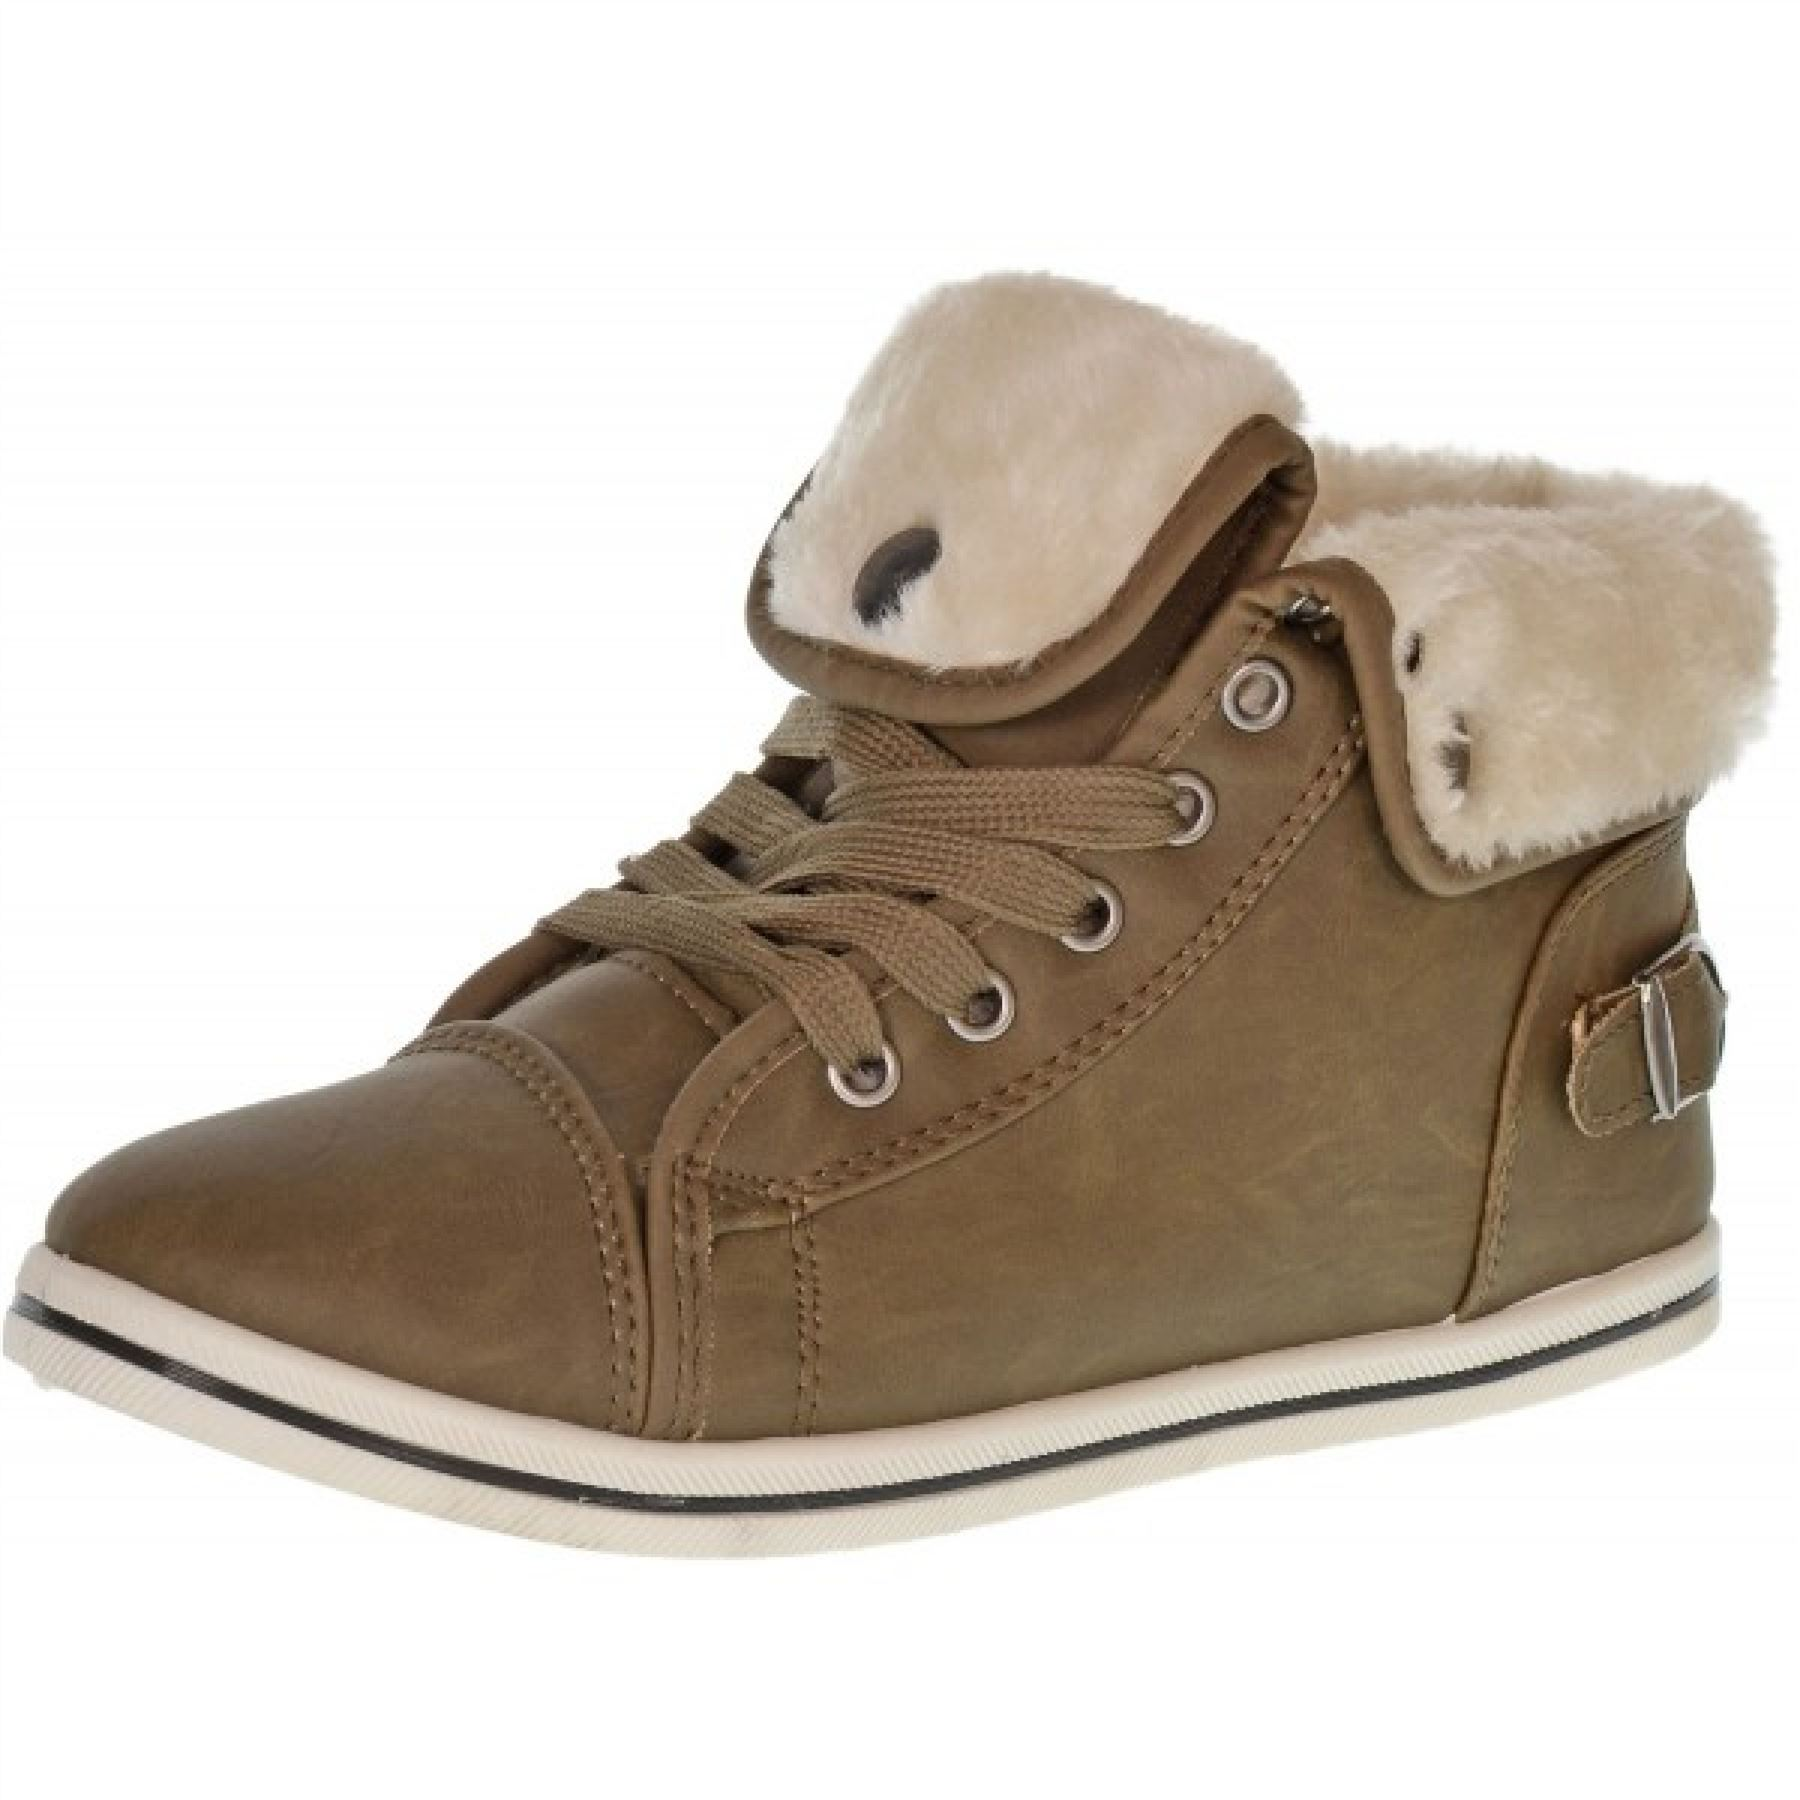 bd3f2ca0cec Ugg Trainers House Of Fraser - cheap watches mgc-gas.com